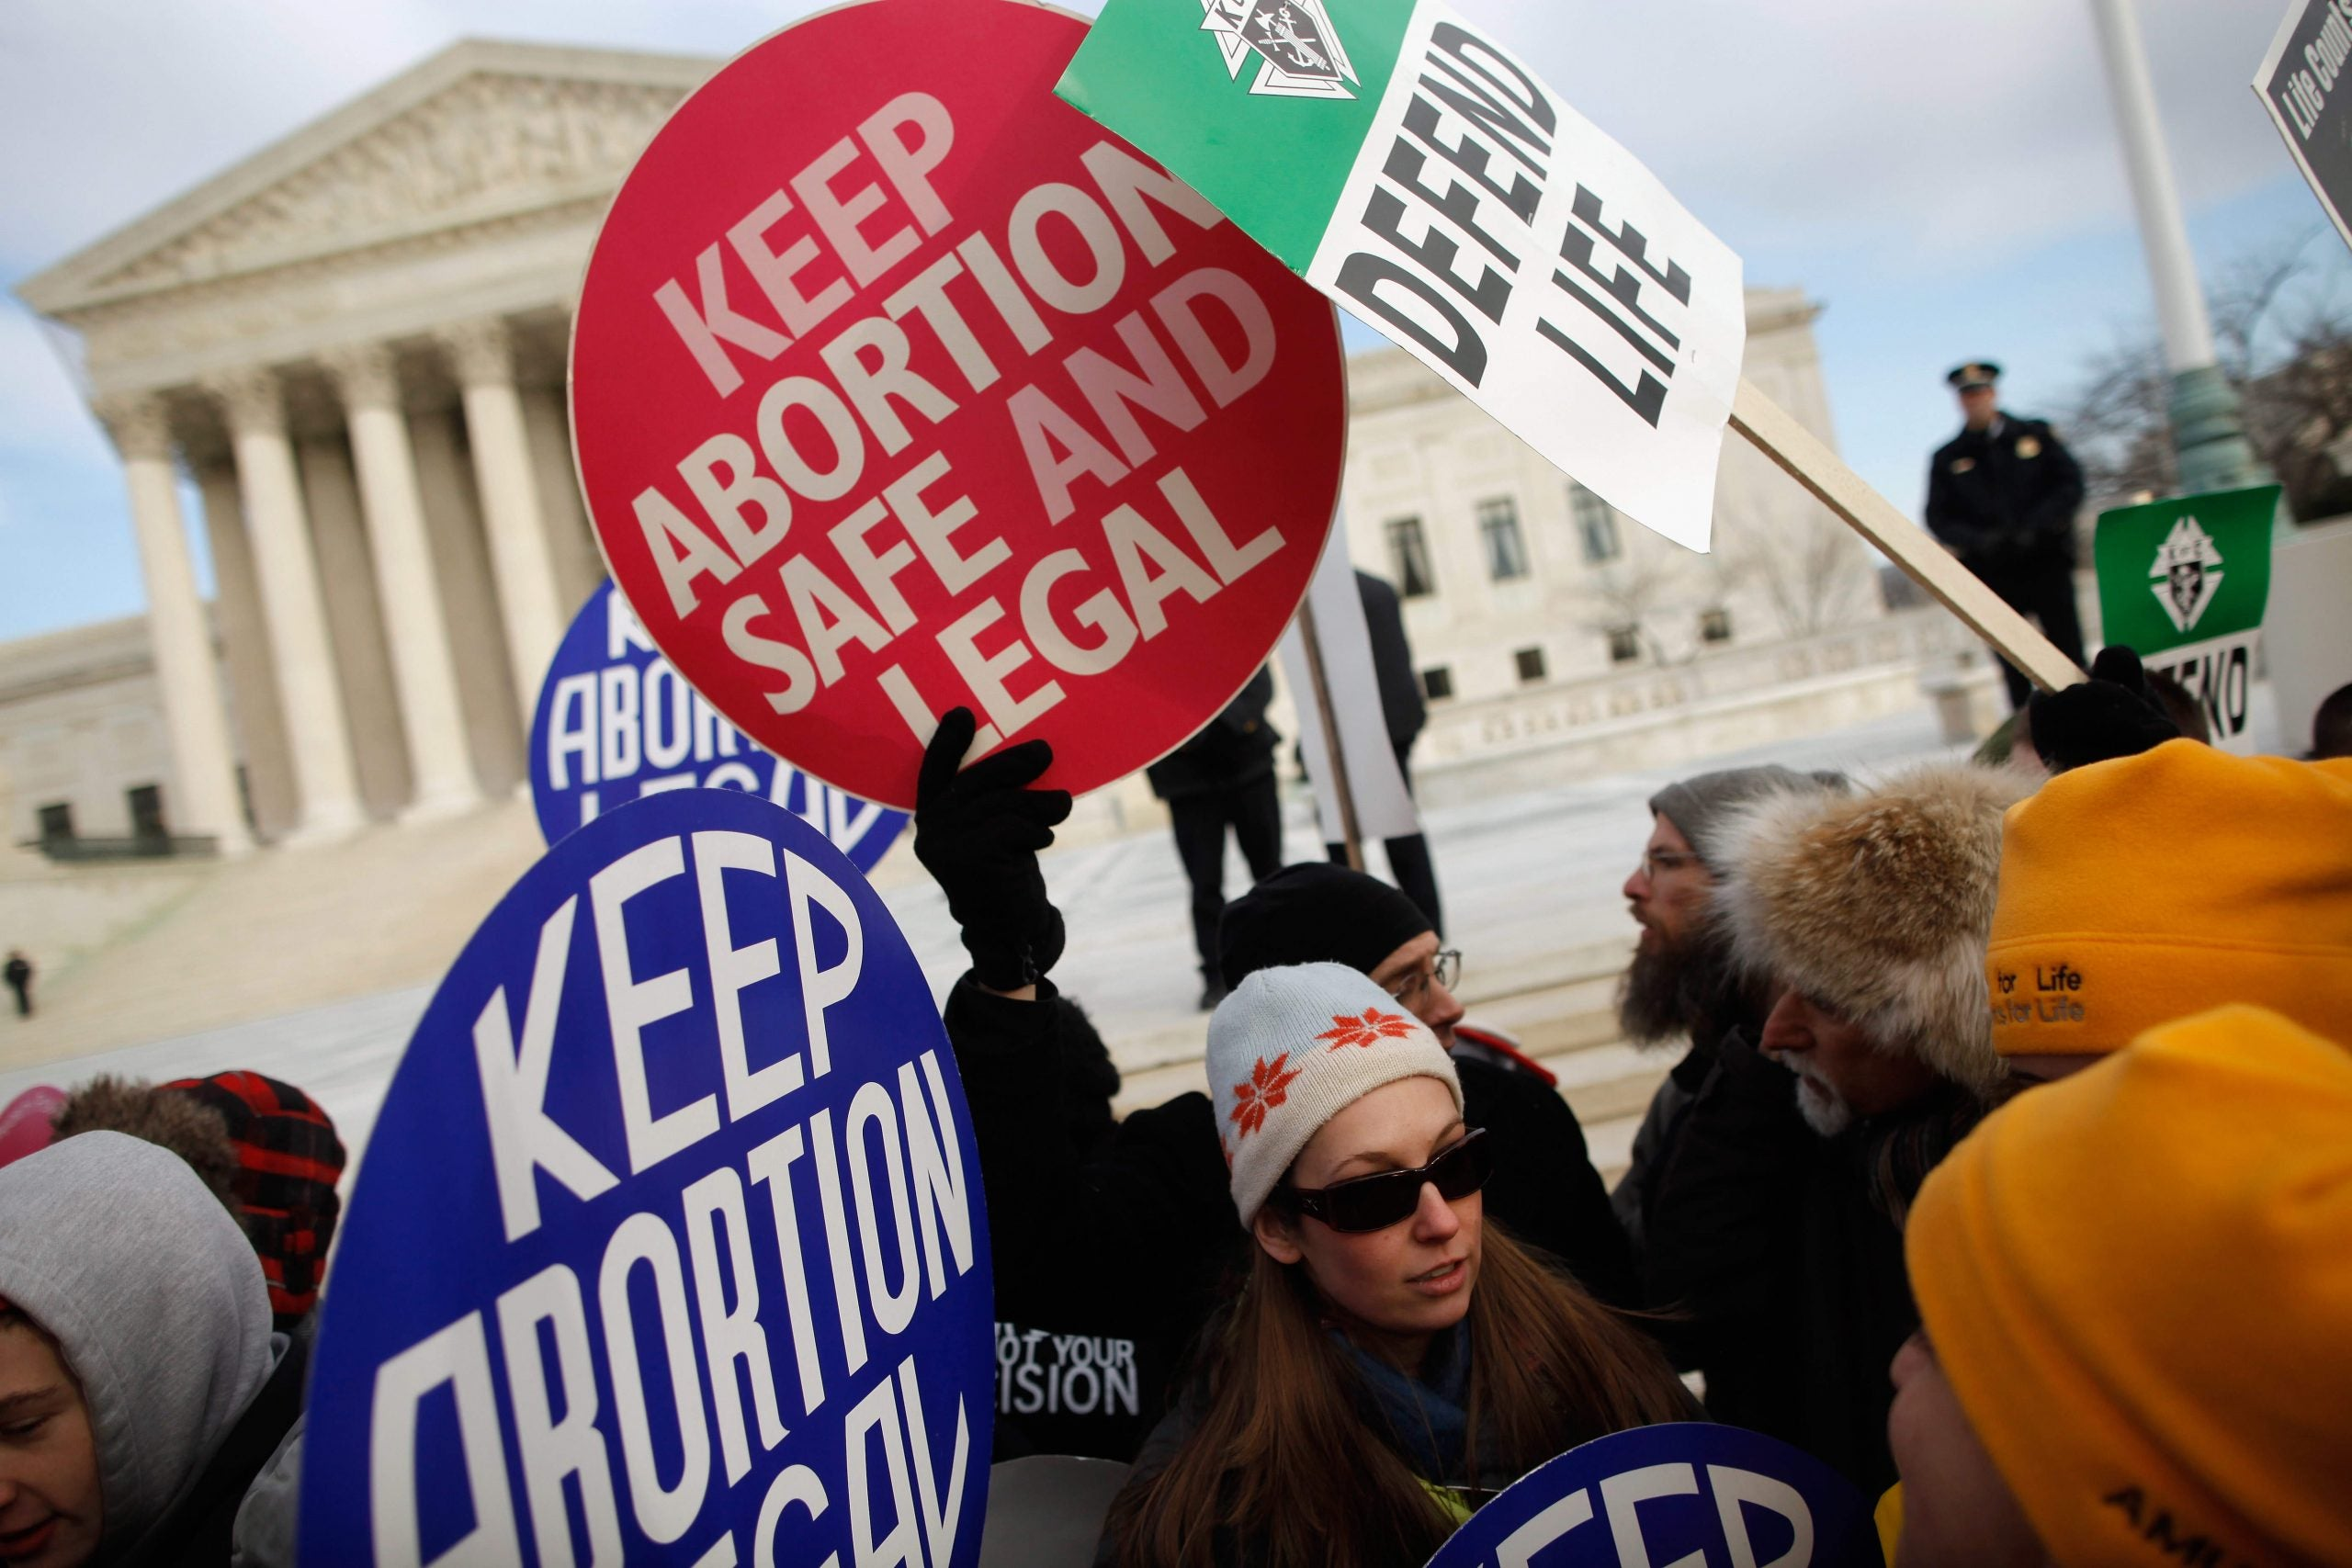 If men got pregnant, abortion would be legal everywhere